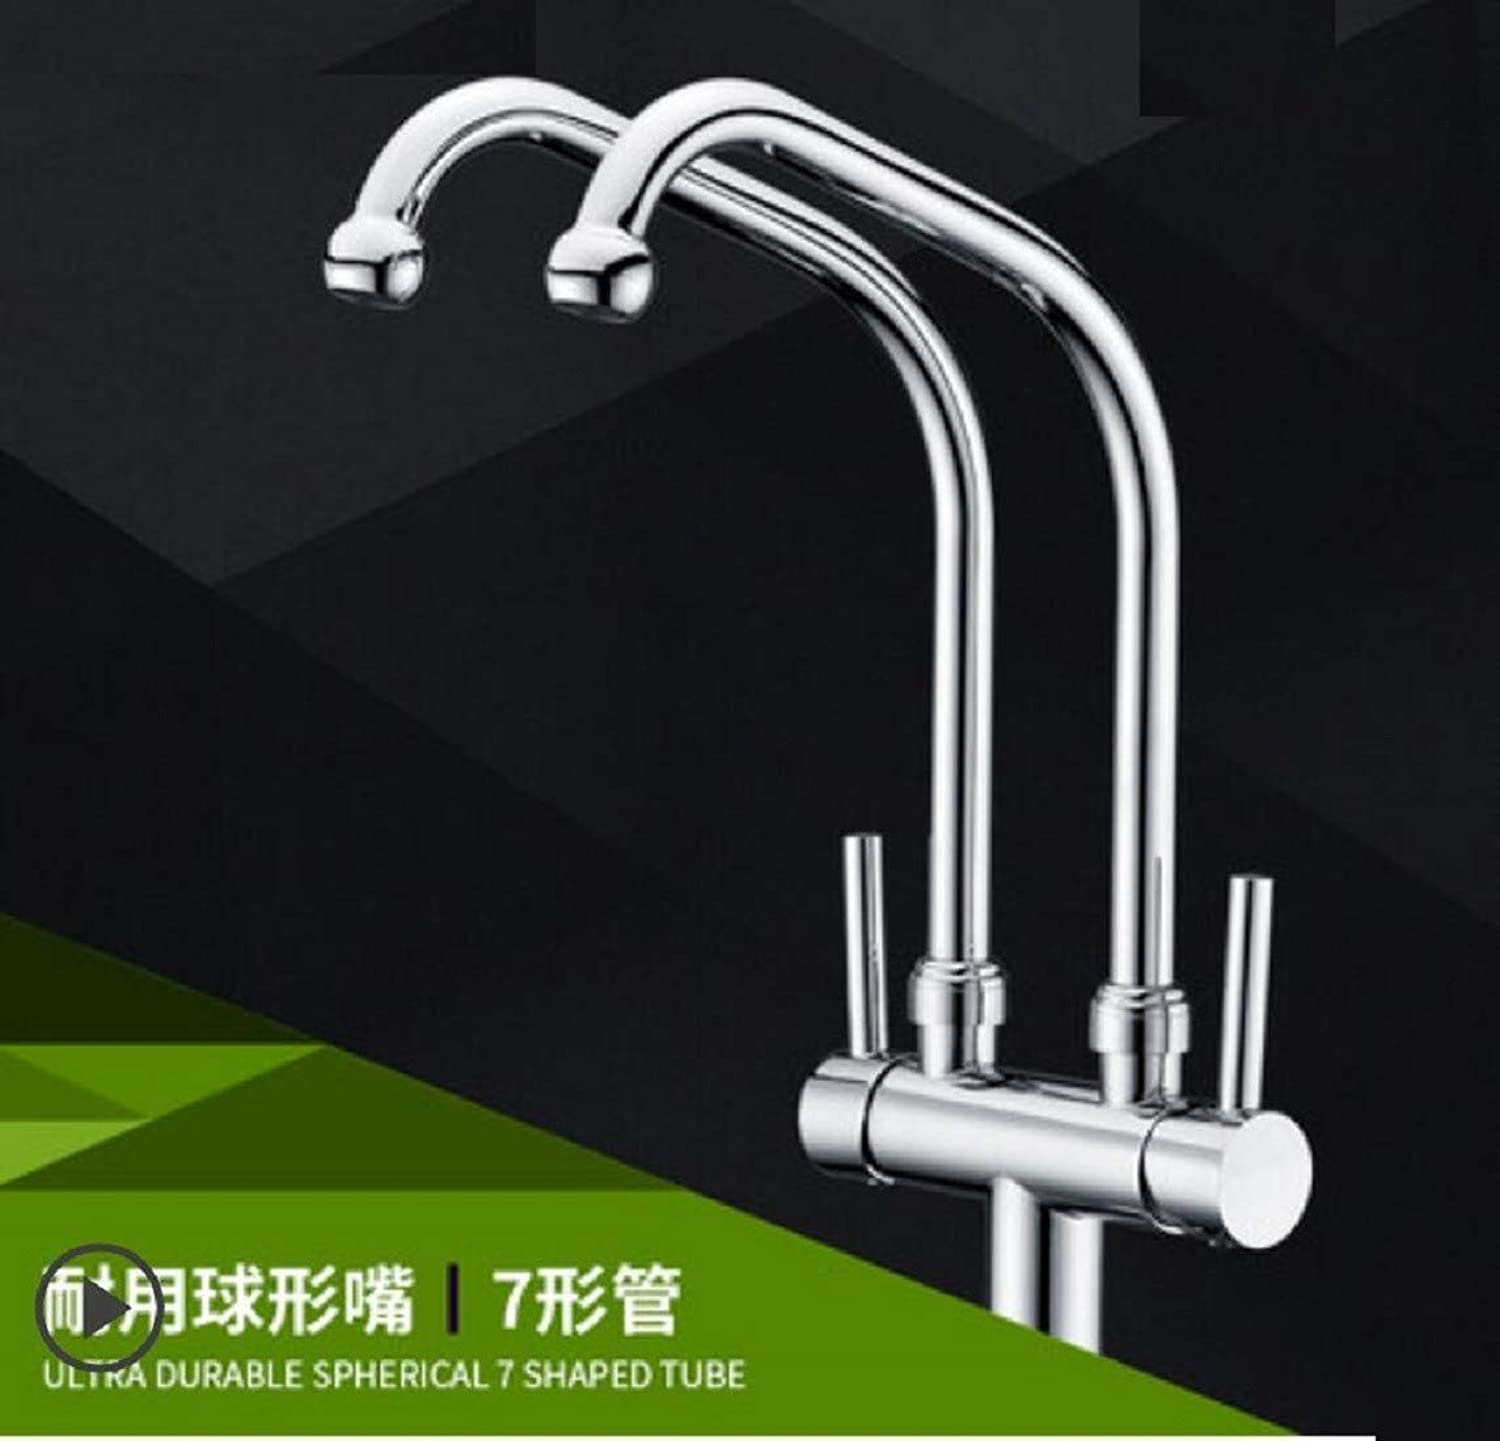 Kitchen Tap Washing Basin Hot and Cold Water Purifier Dual Outlet Washbowl Washer Faucet Kitchen Taps Kitchen Sink Mixer Taps Basin Tap